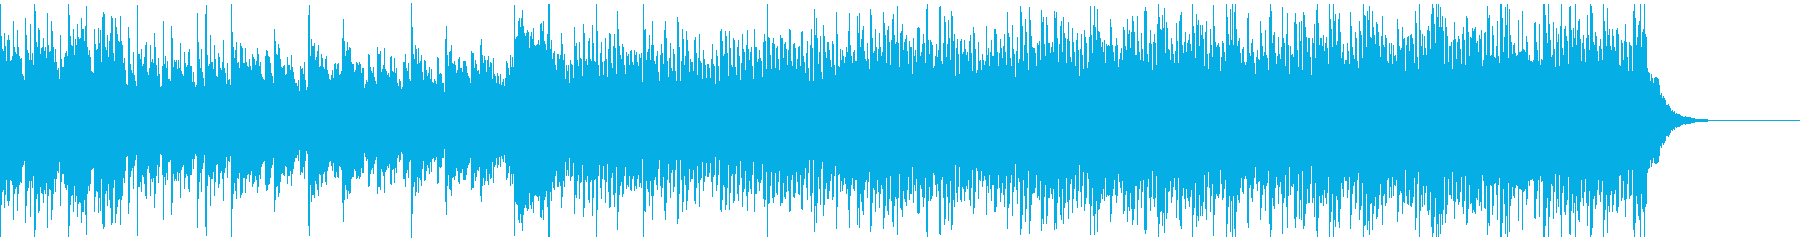 Cool game music's reproduced waveform